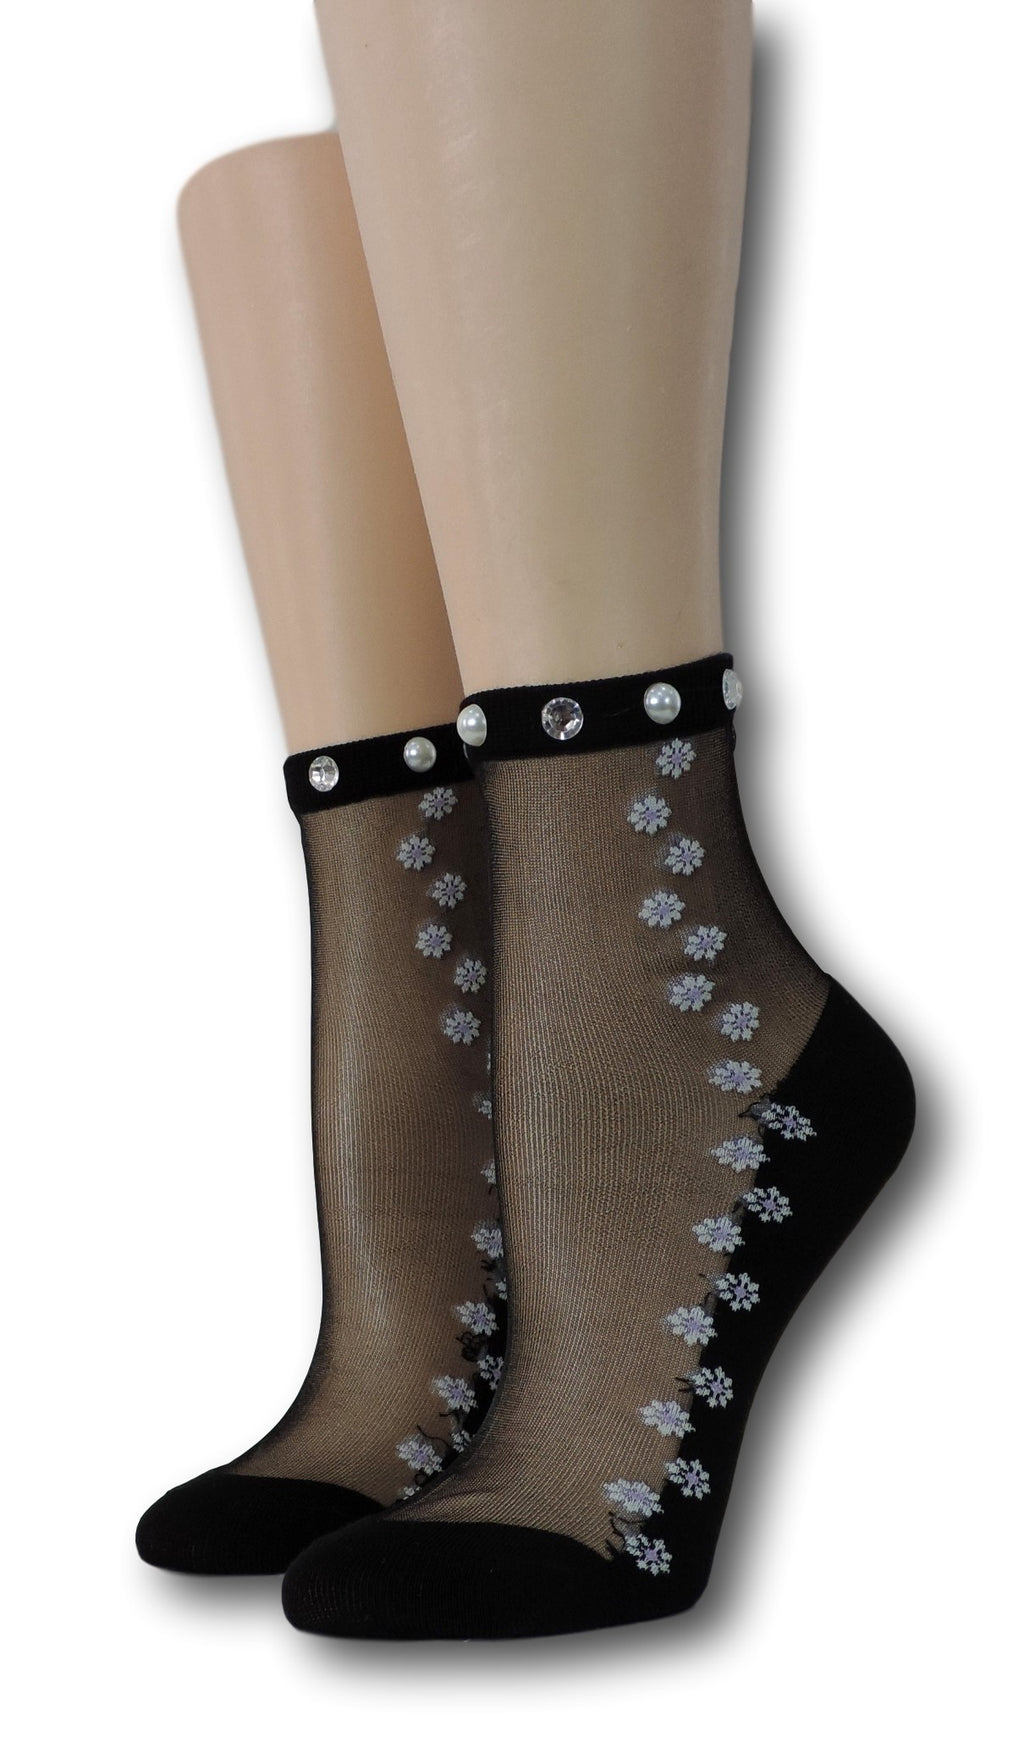 Pearl Seamless Floral Sheer Socks with beads